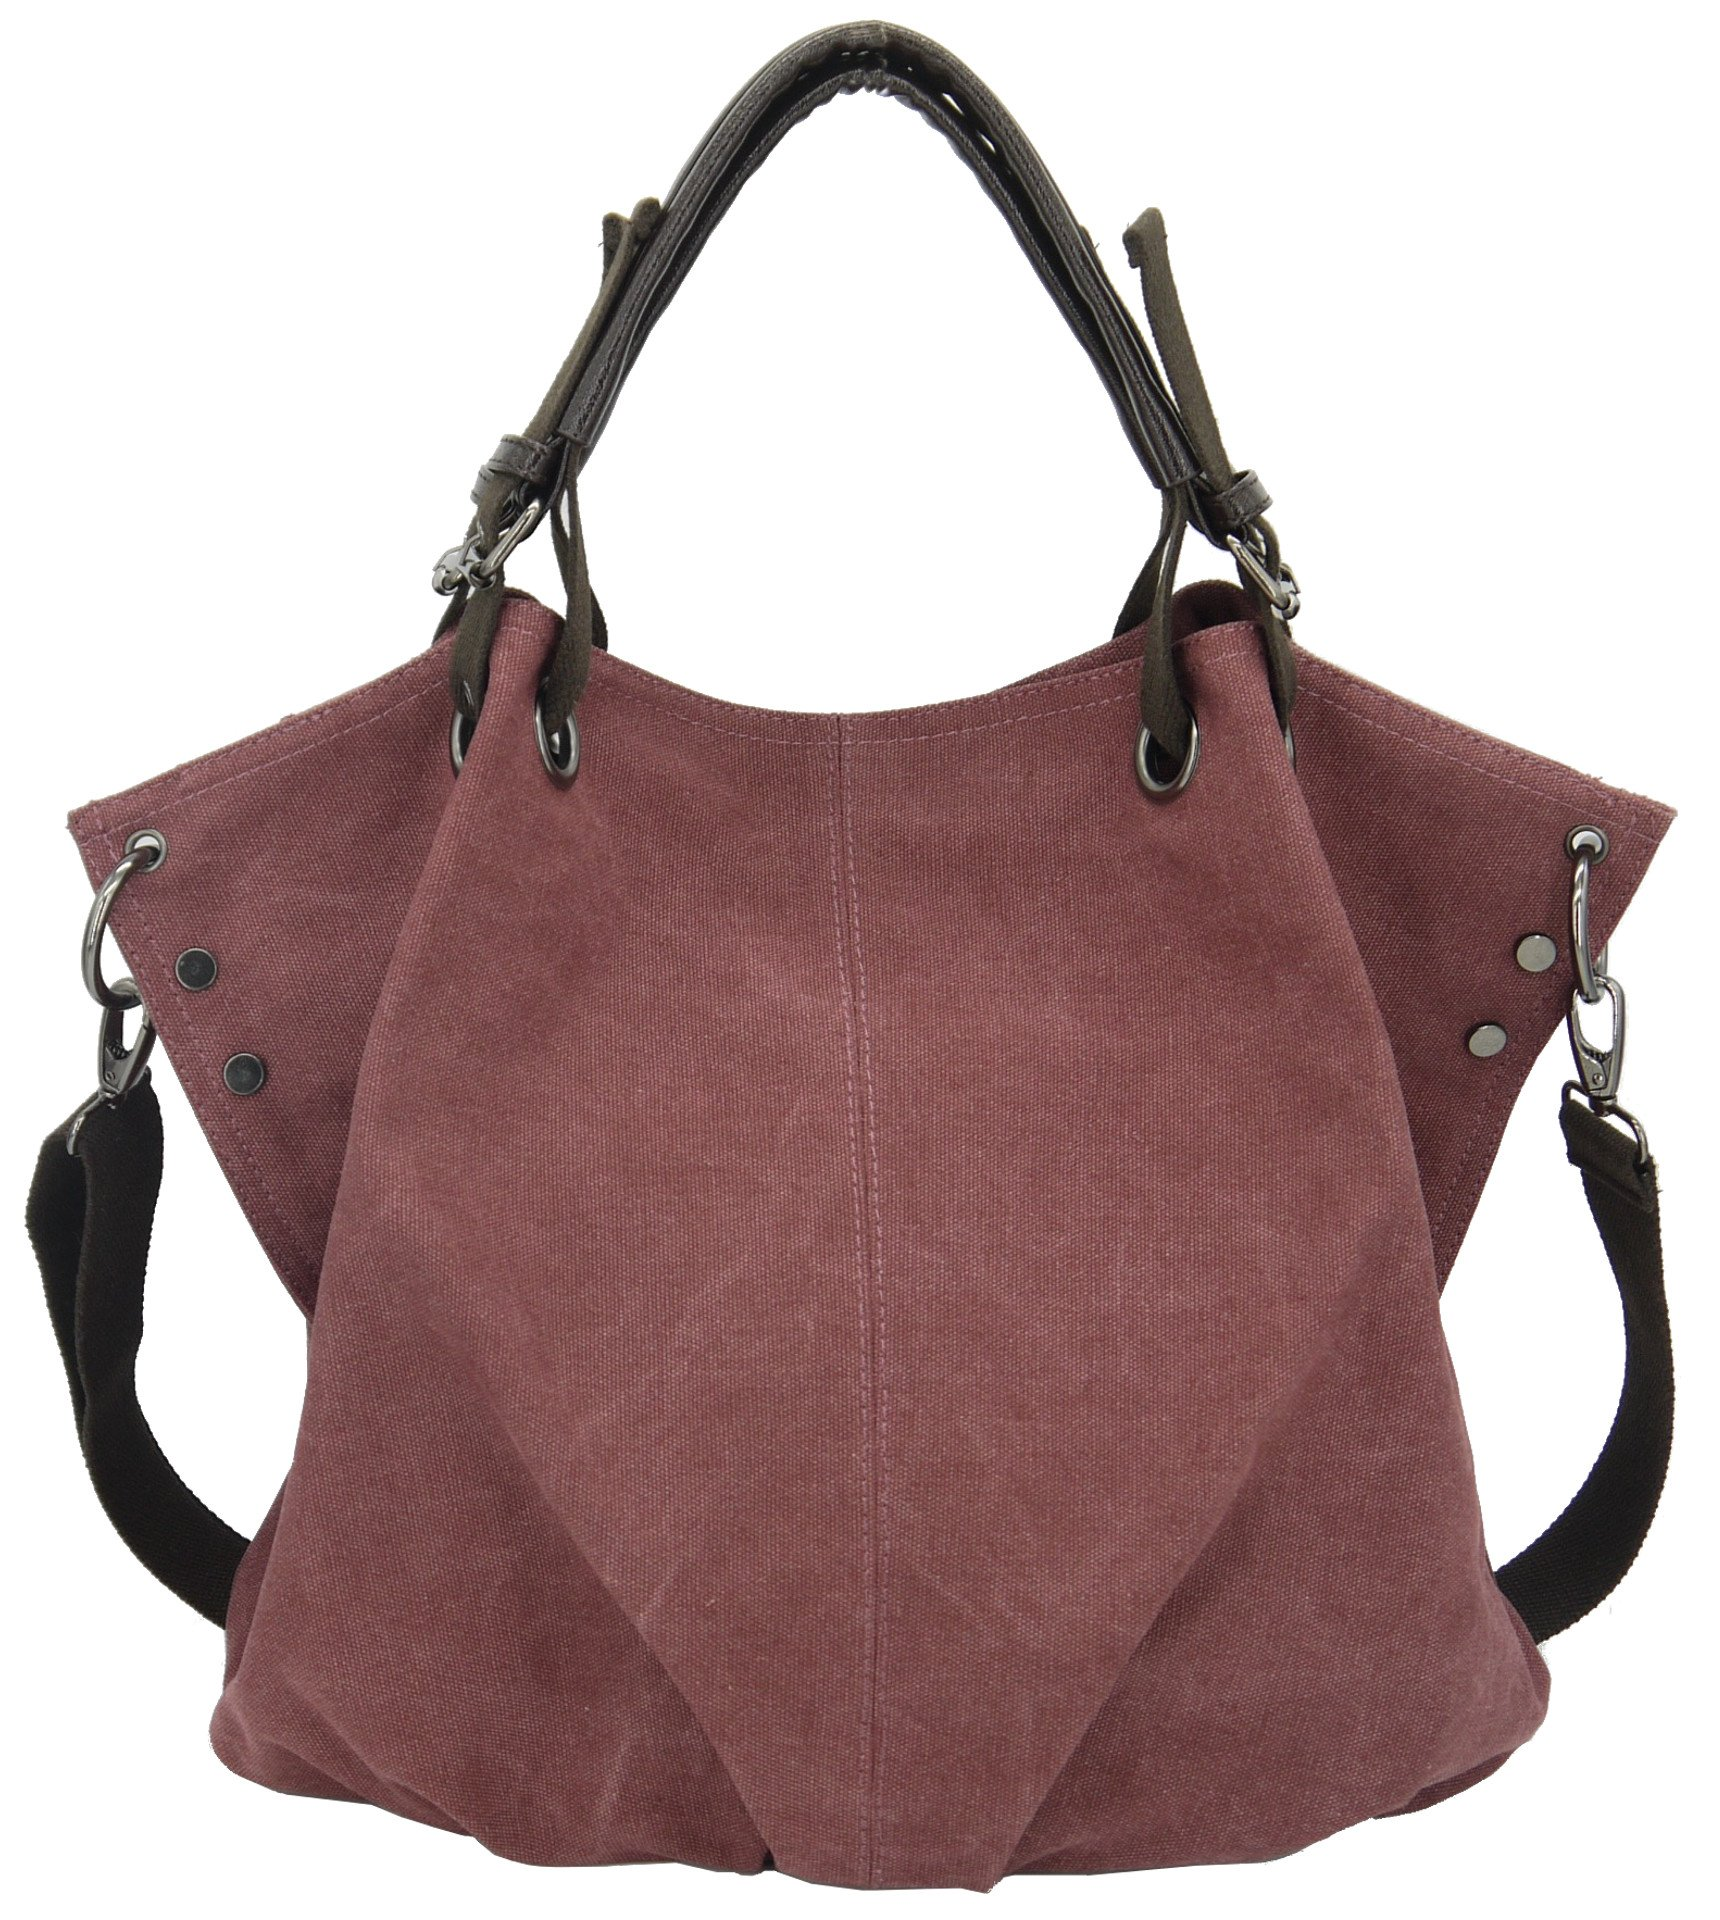 Women Canvas Large Bag w/Cross-Body Strap, 2-Way Shoulder Tote (KIREI obsession) LARGE RED